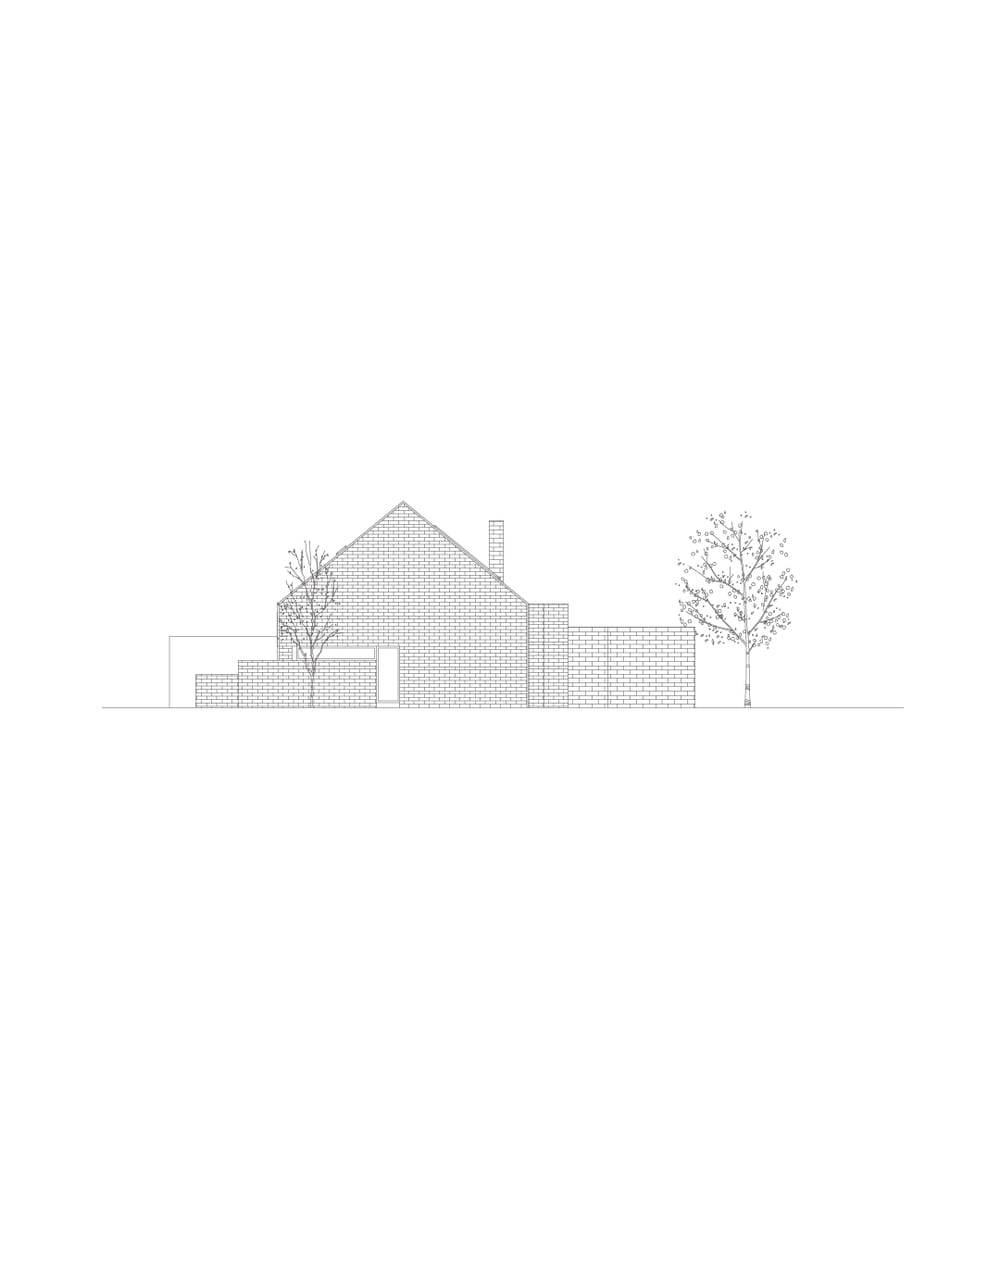 This is an illustration of the house's elevation showcasing the sections of the house.